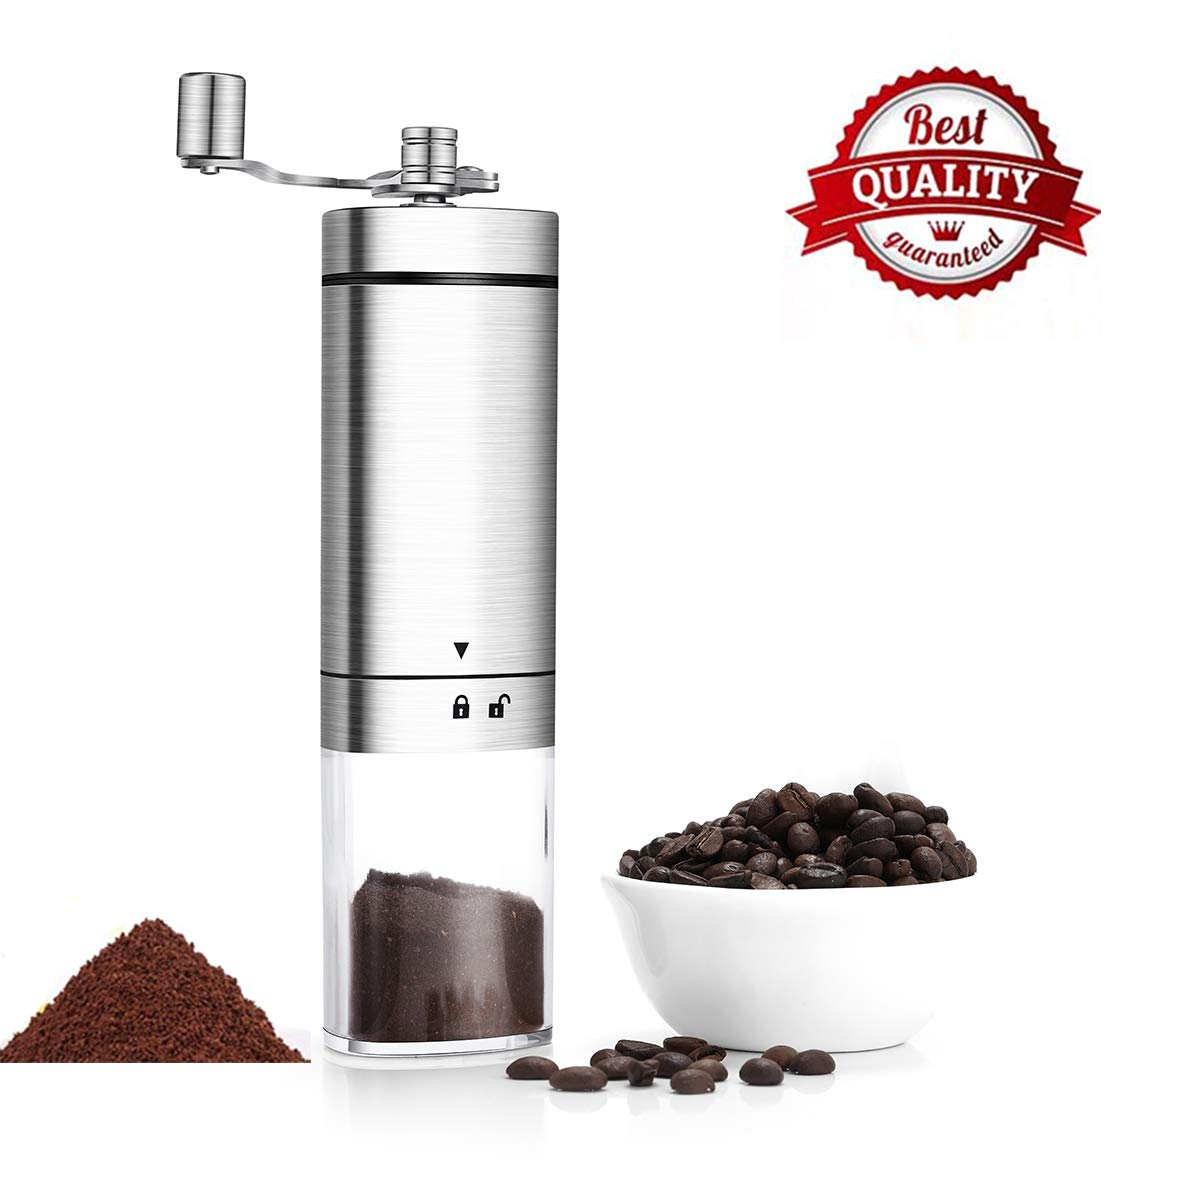 Manual Coffee Grinder,Conical Burr Mill With Adjustable Setting,Portable Hand Crank Coffee Grinder For Travel,Brushed Stainless Steel,Best For Espresso,French Press,Home Kitchen,Office,Travel by KEESON